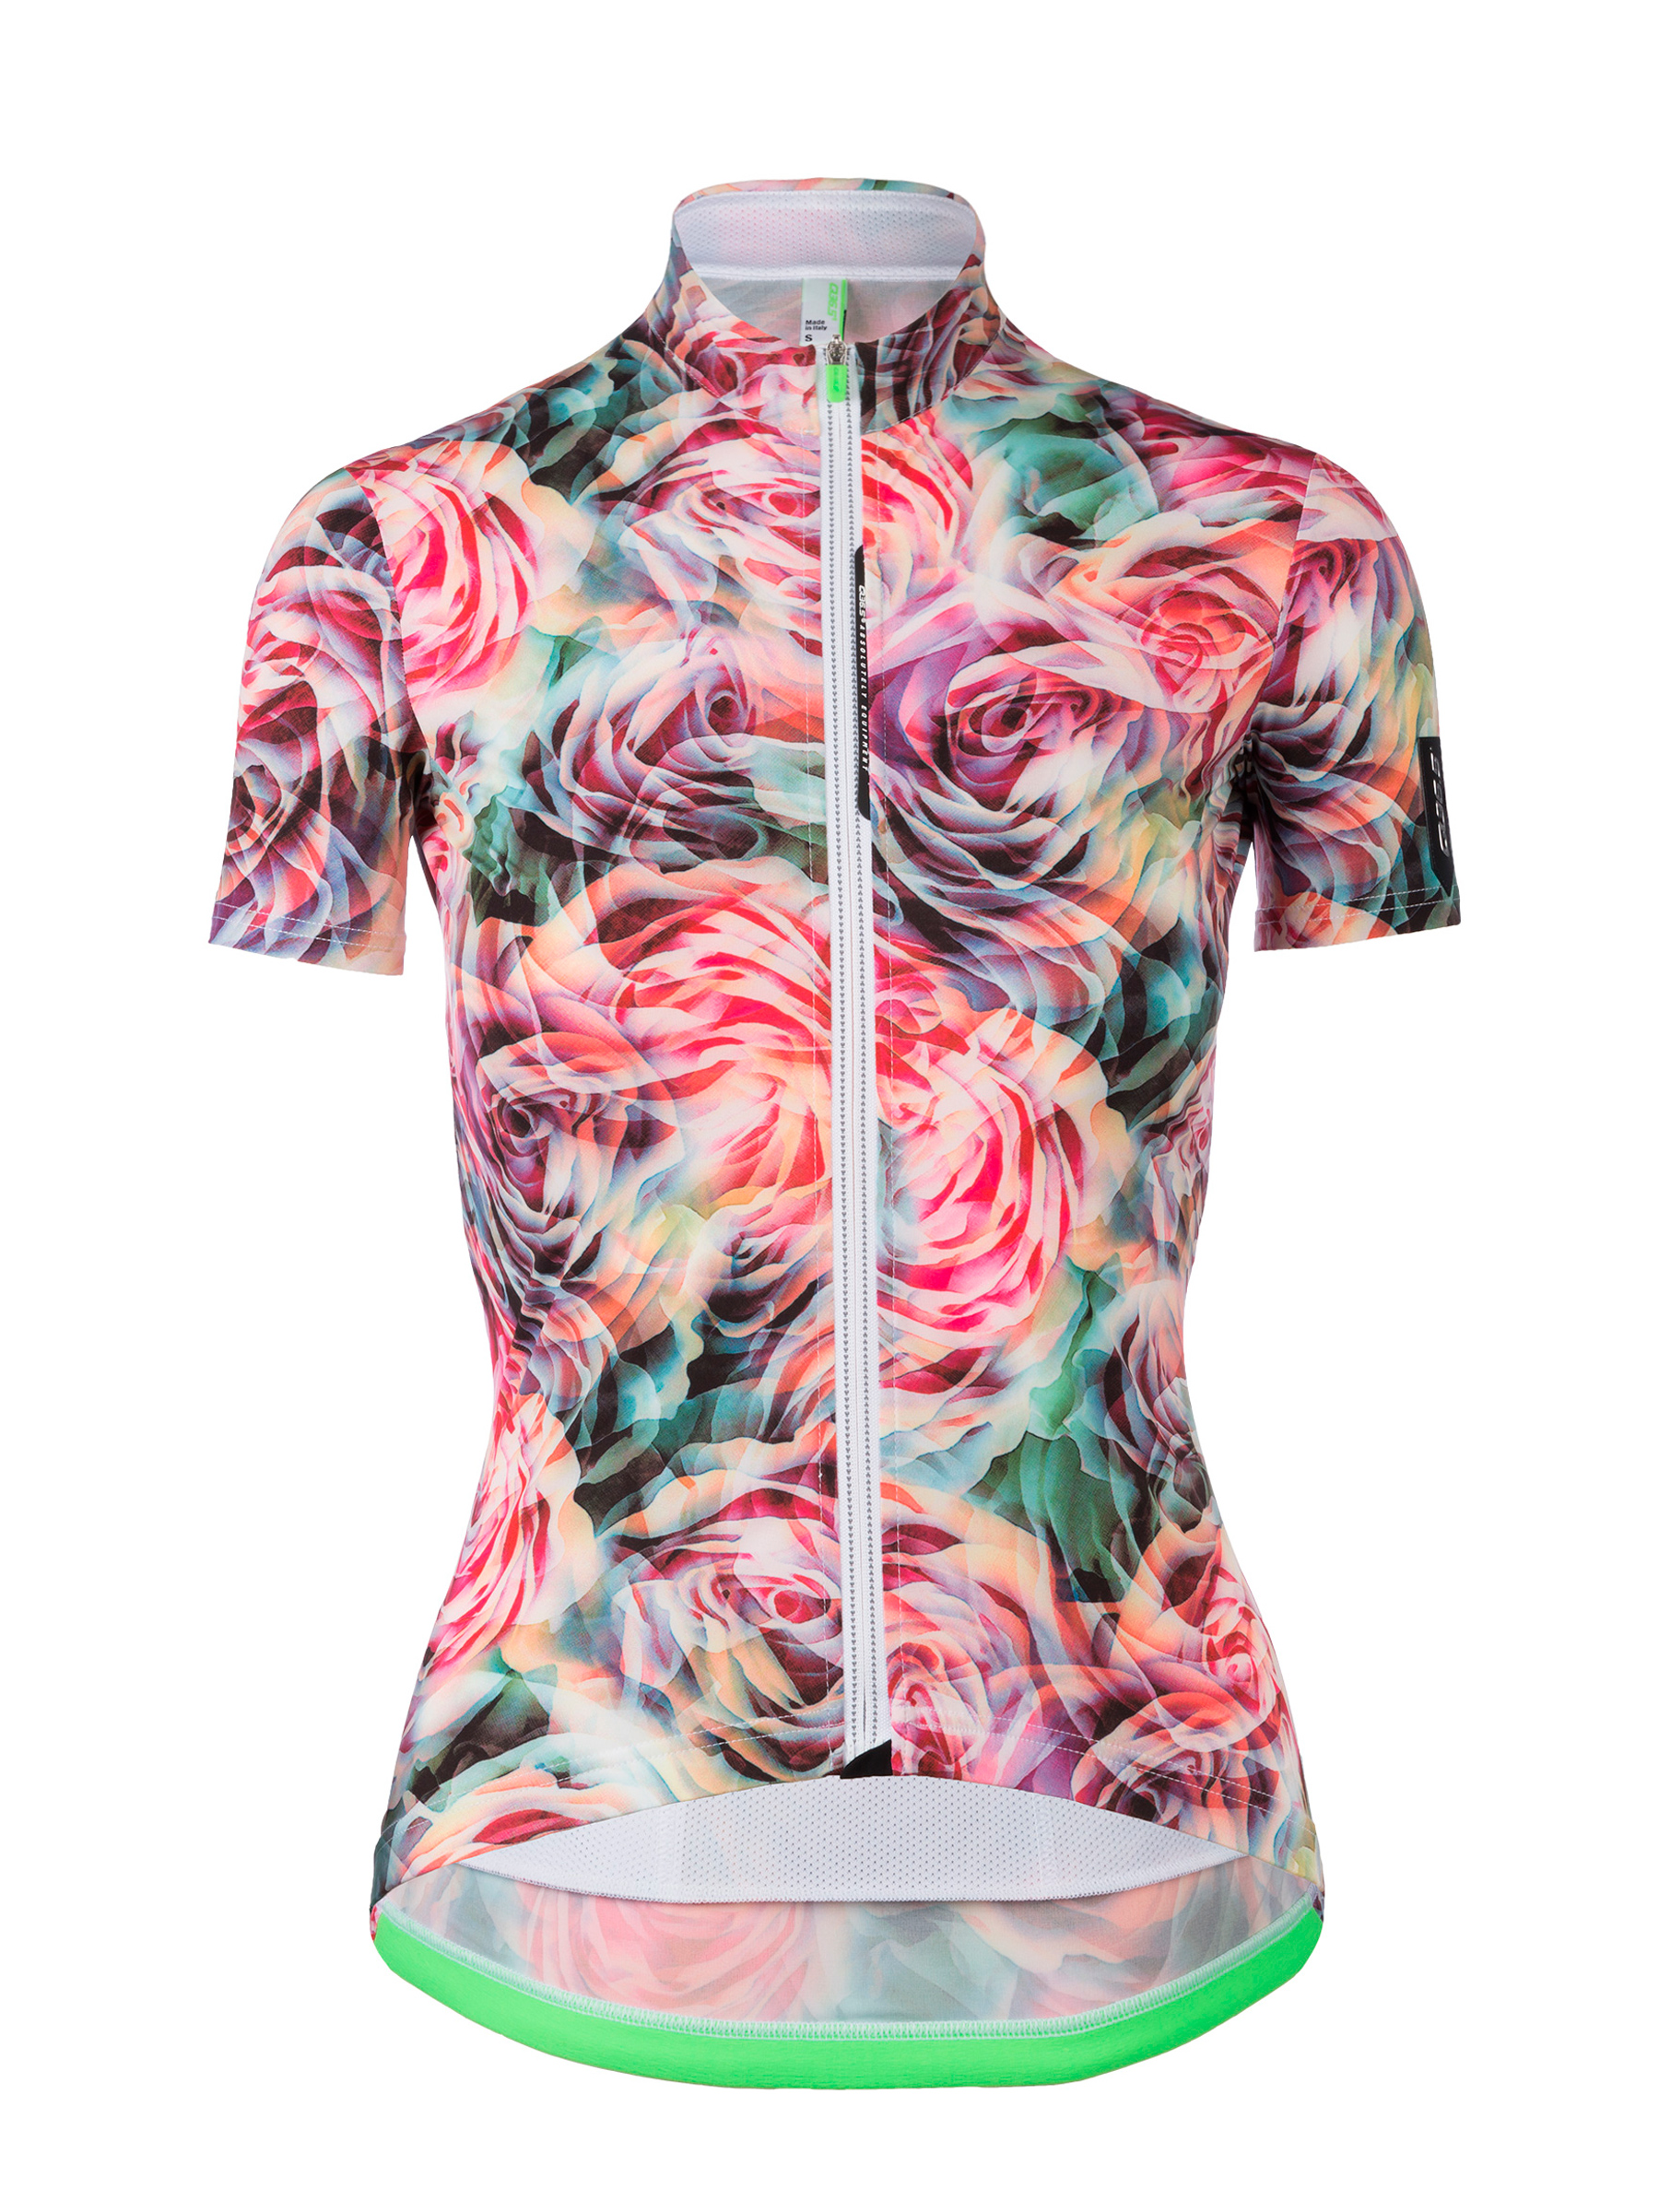 Womens cycling graphic Jersey short sleeve G1 Lady flower Q36.5